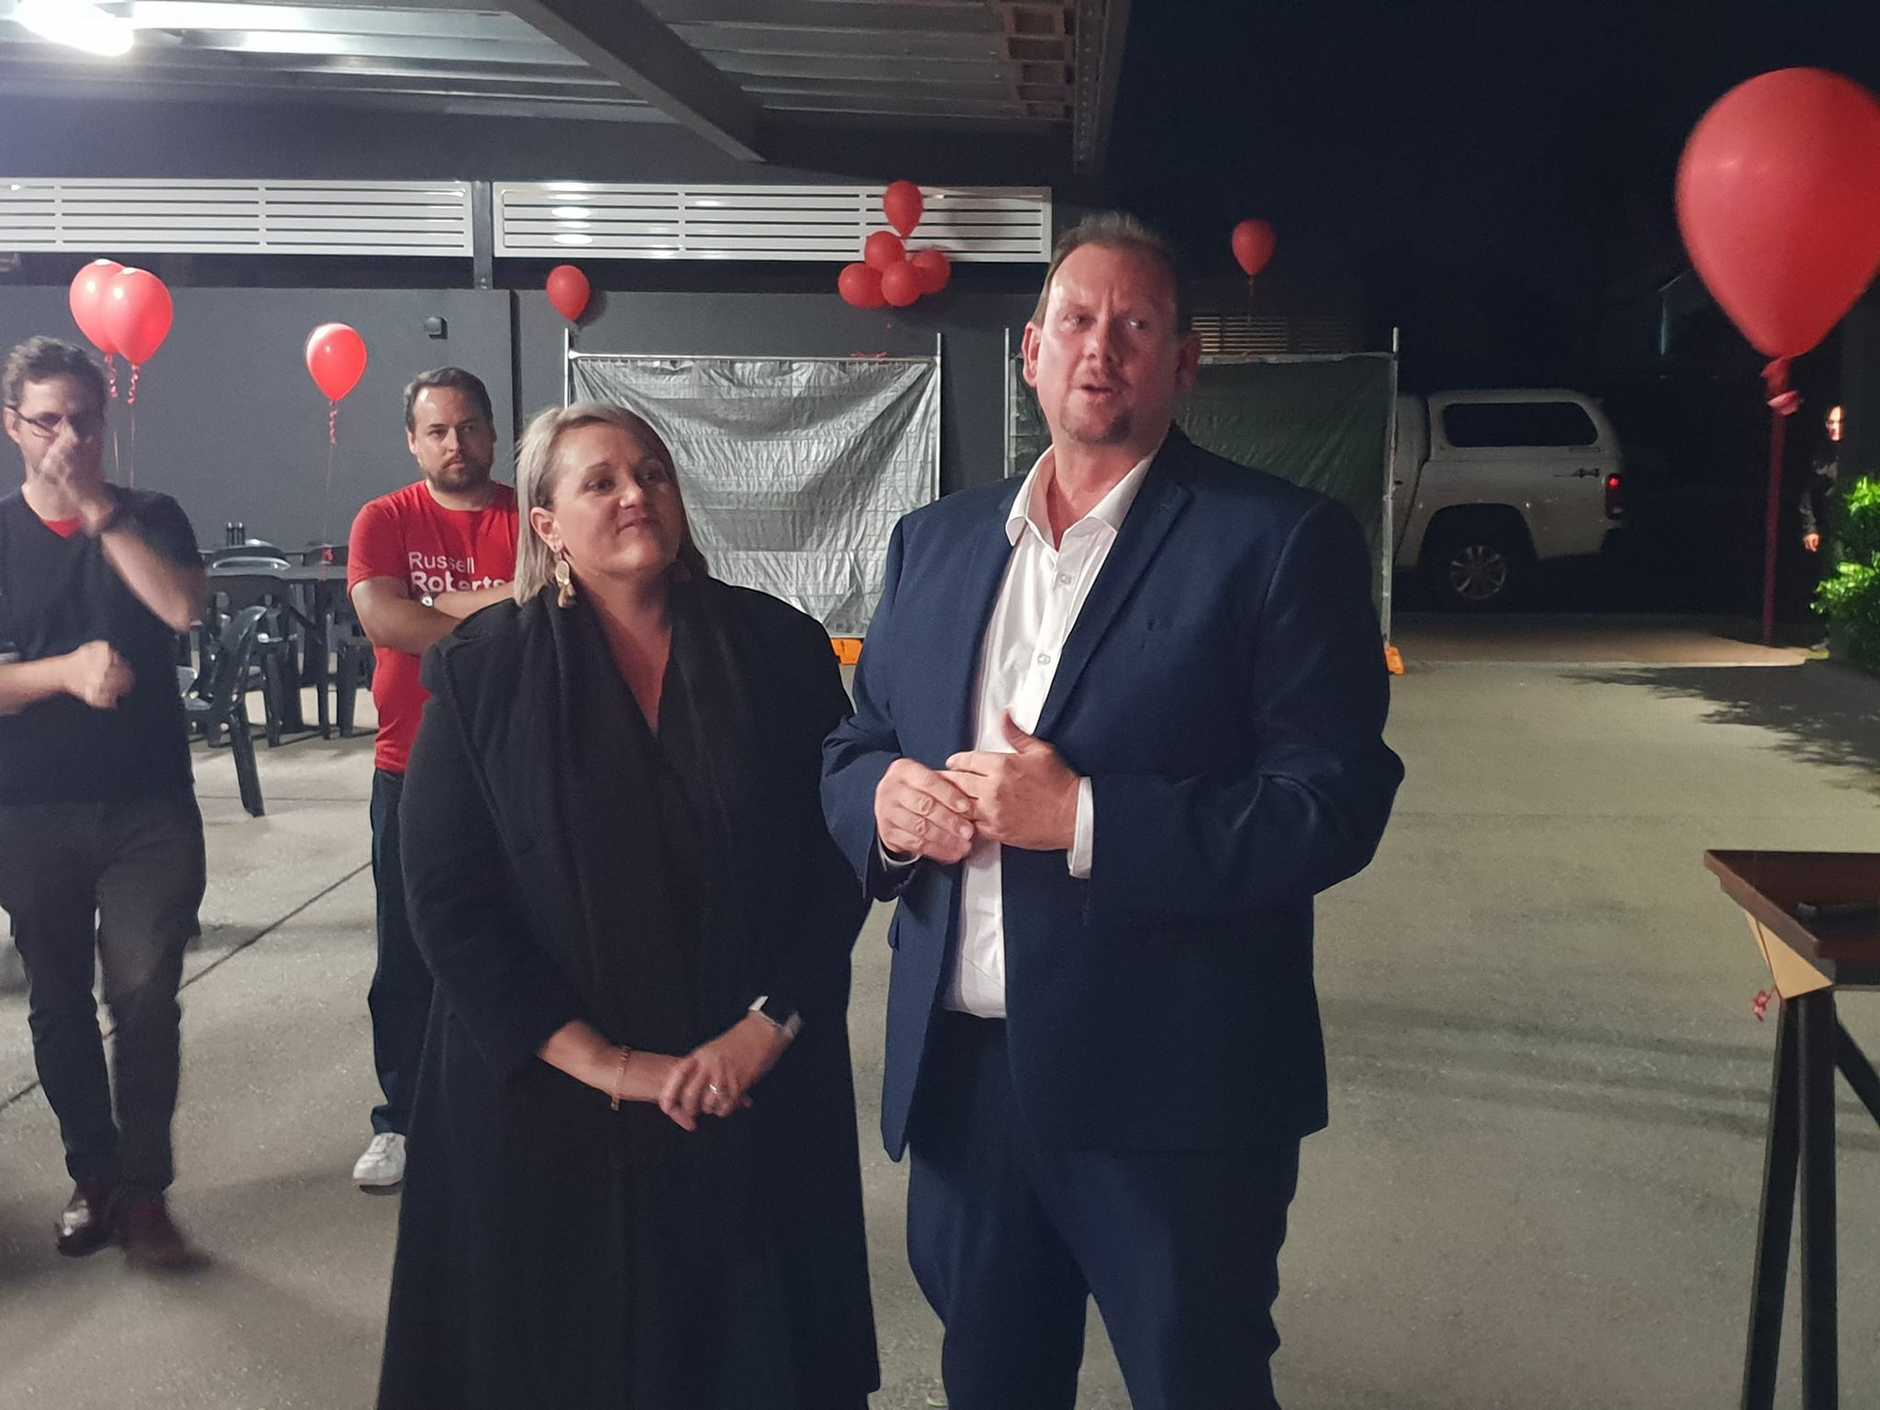 While he has not yet conceded, ALP candidate Russell Robertson has congratulated his biggest rival in the Federal election campaign, LNP's Michelle Landry.